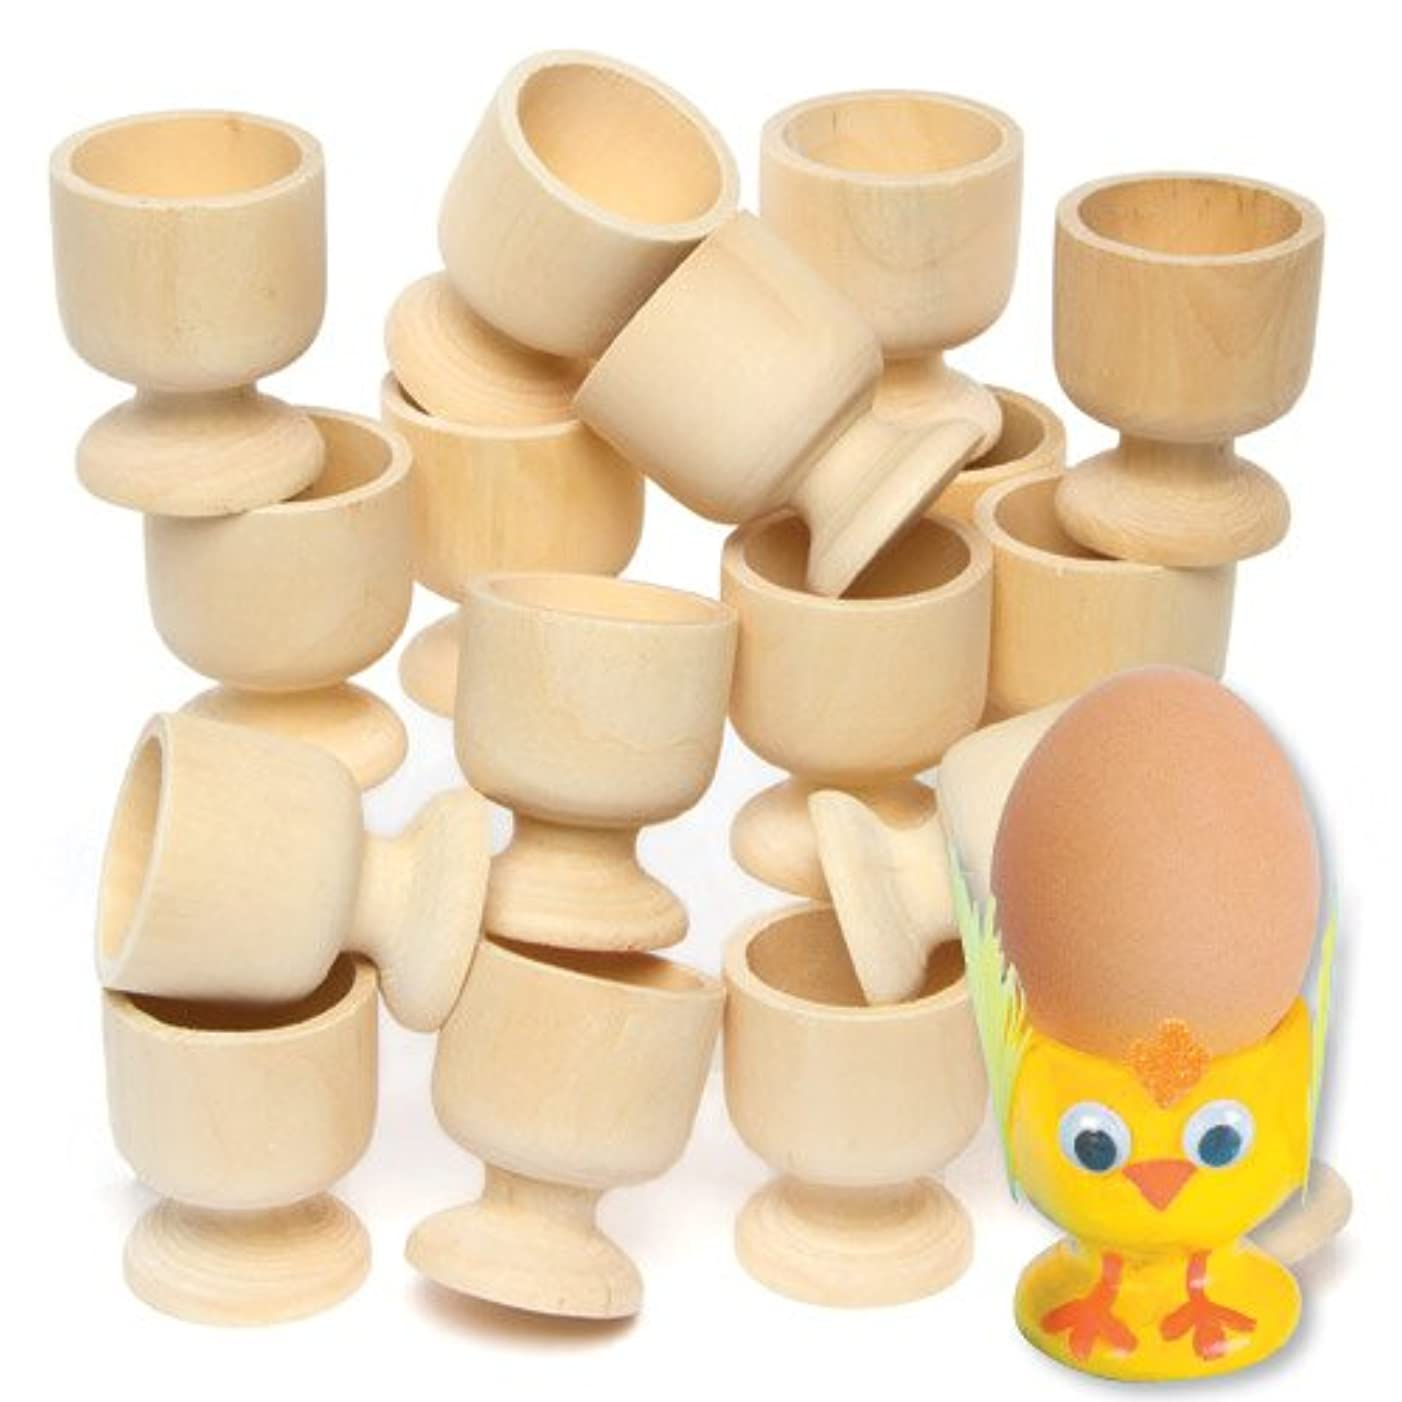 Baker Ross Wooden Egg Cups (Pack of 6) for Kids to Paint and Decorate